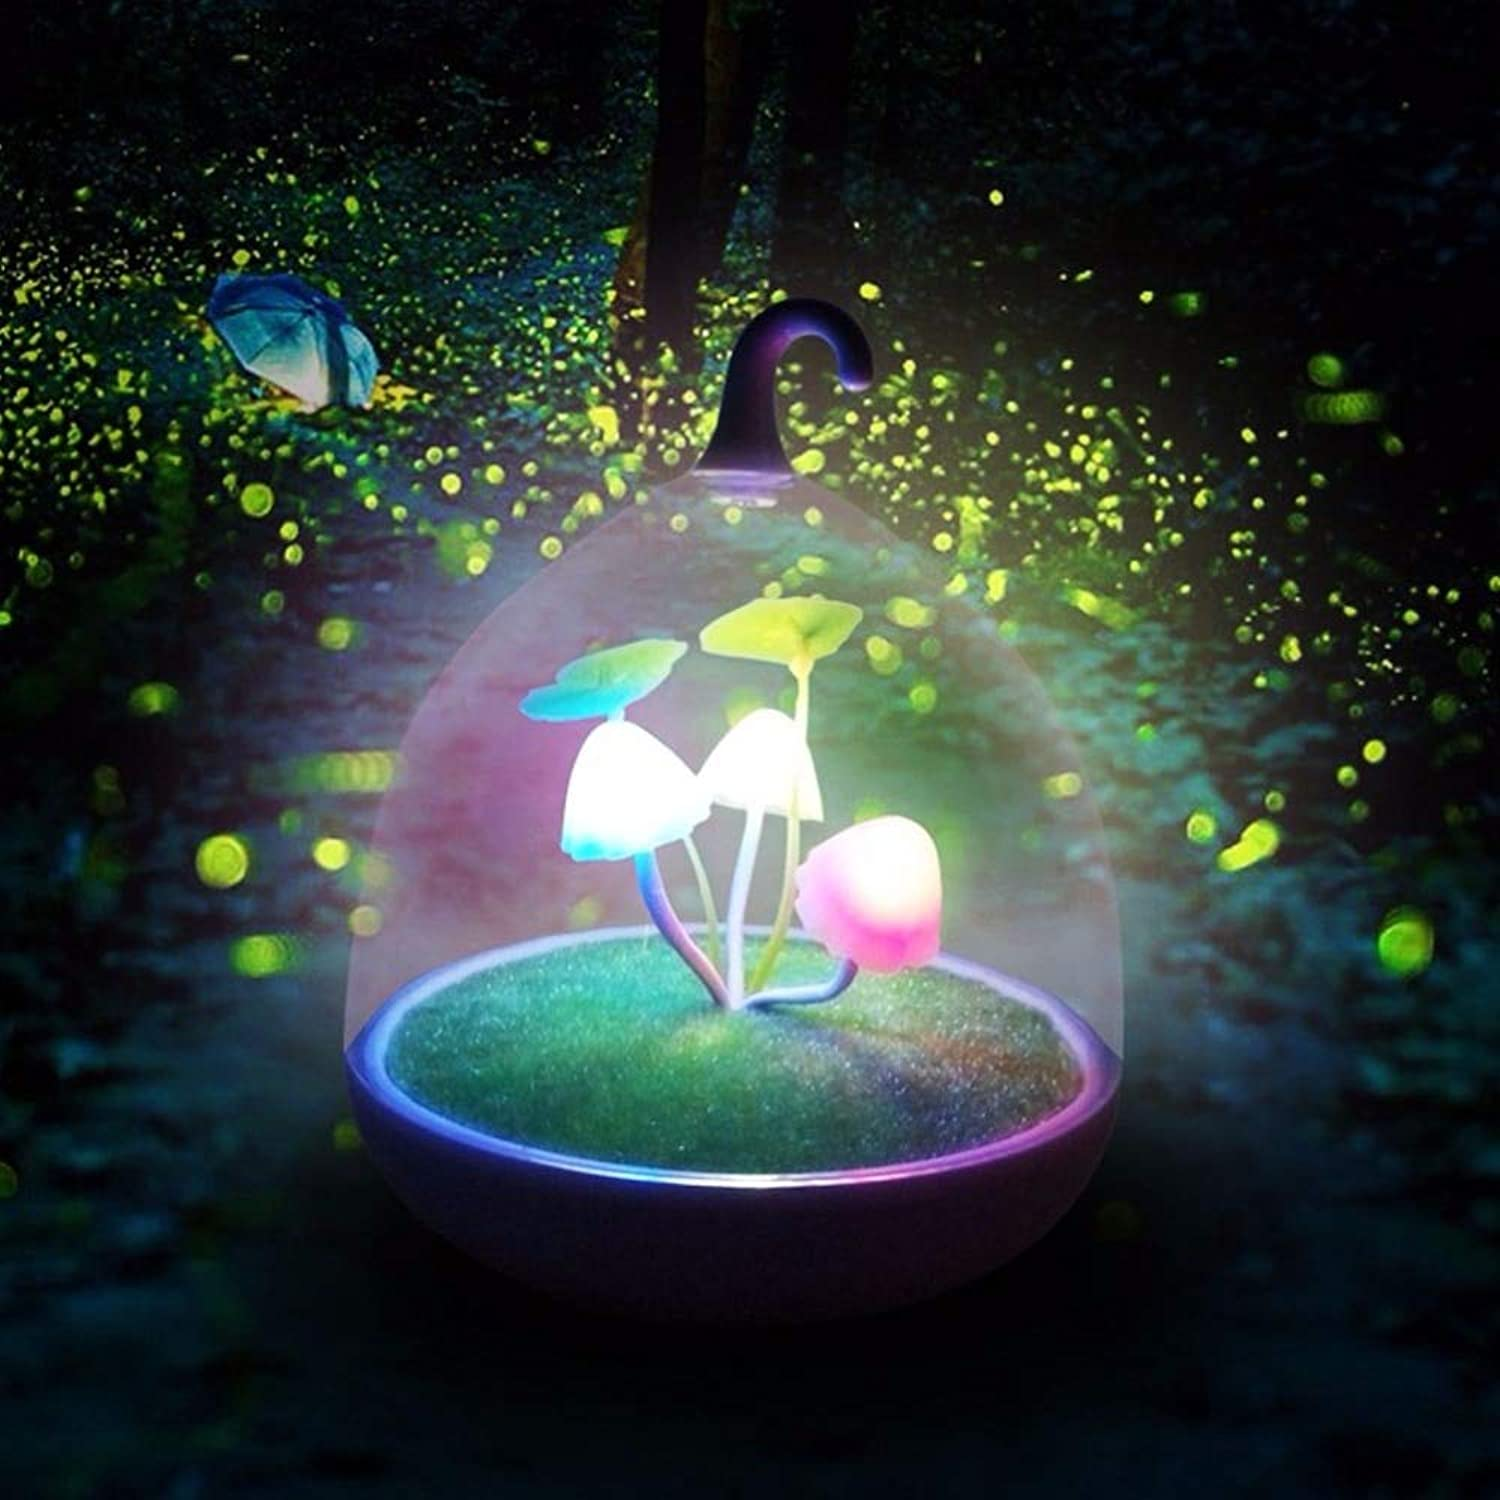 LySanSan  LED Light Toys colorful Mushroom Lamp Glow in The Dark Touch Sensor Night Lamps for Light Up Toys Sleeping Kids Gifts 0.5W